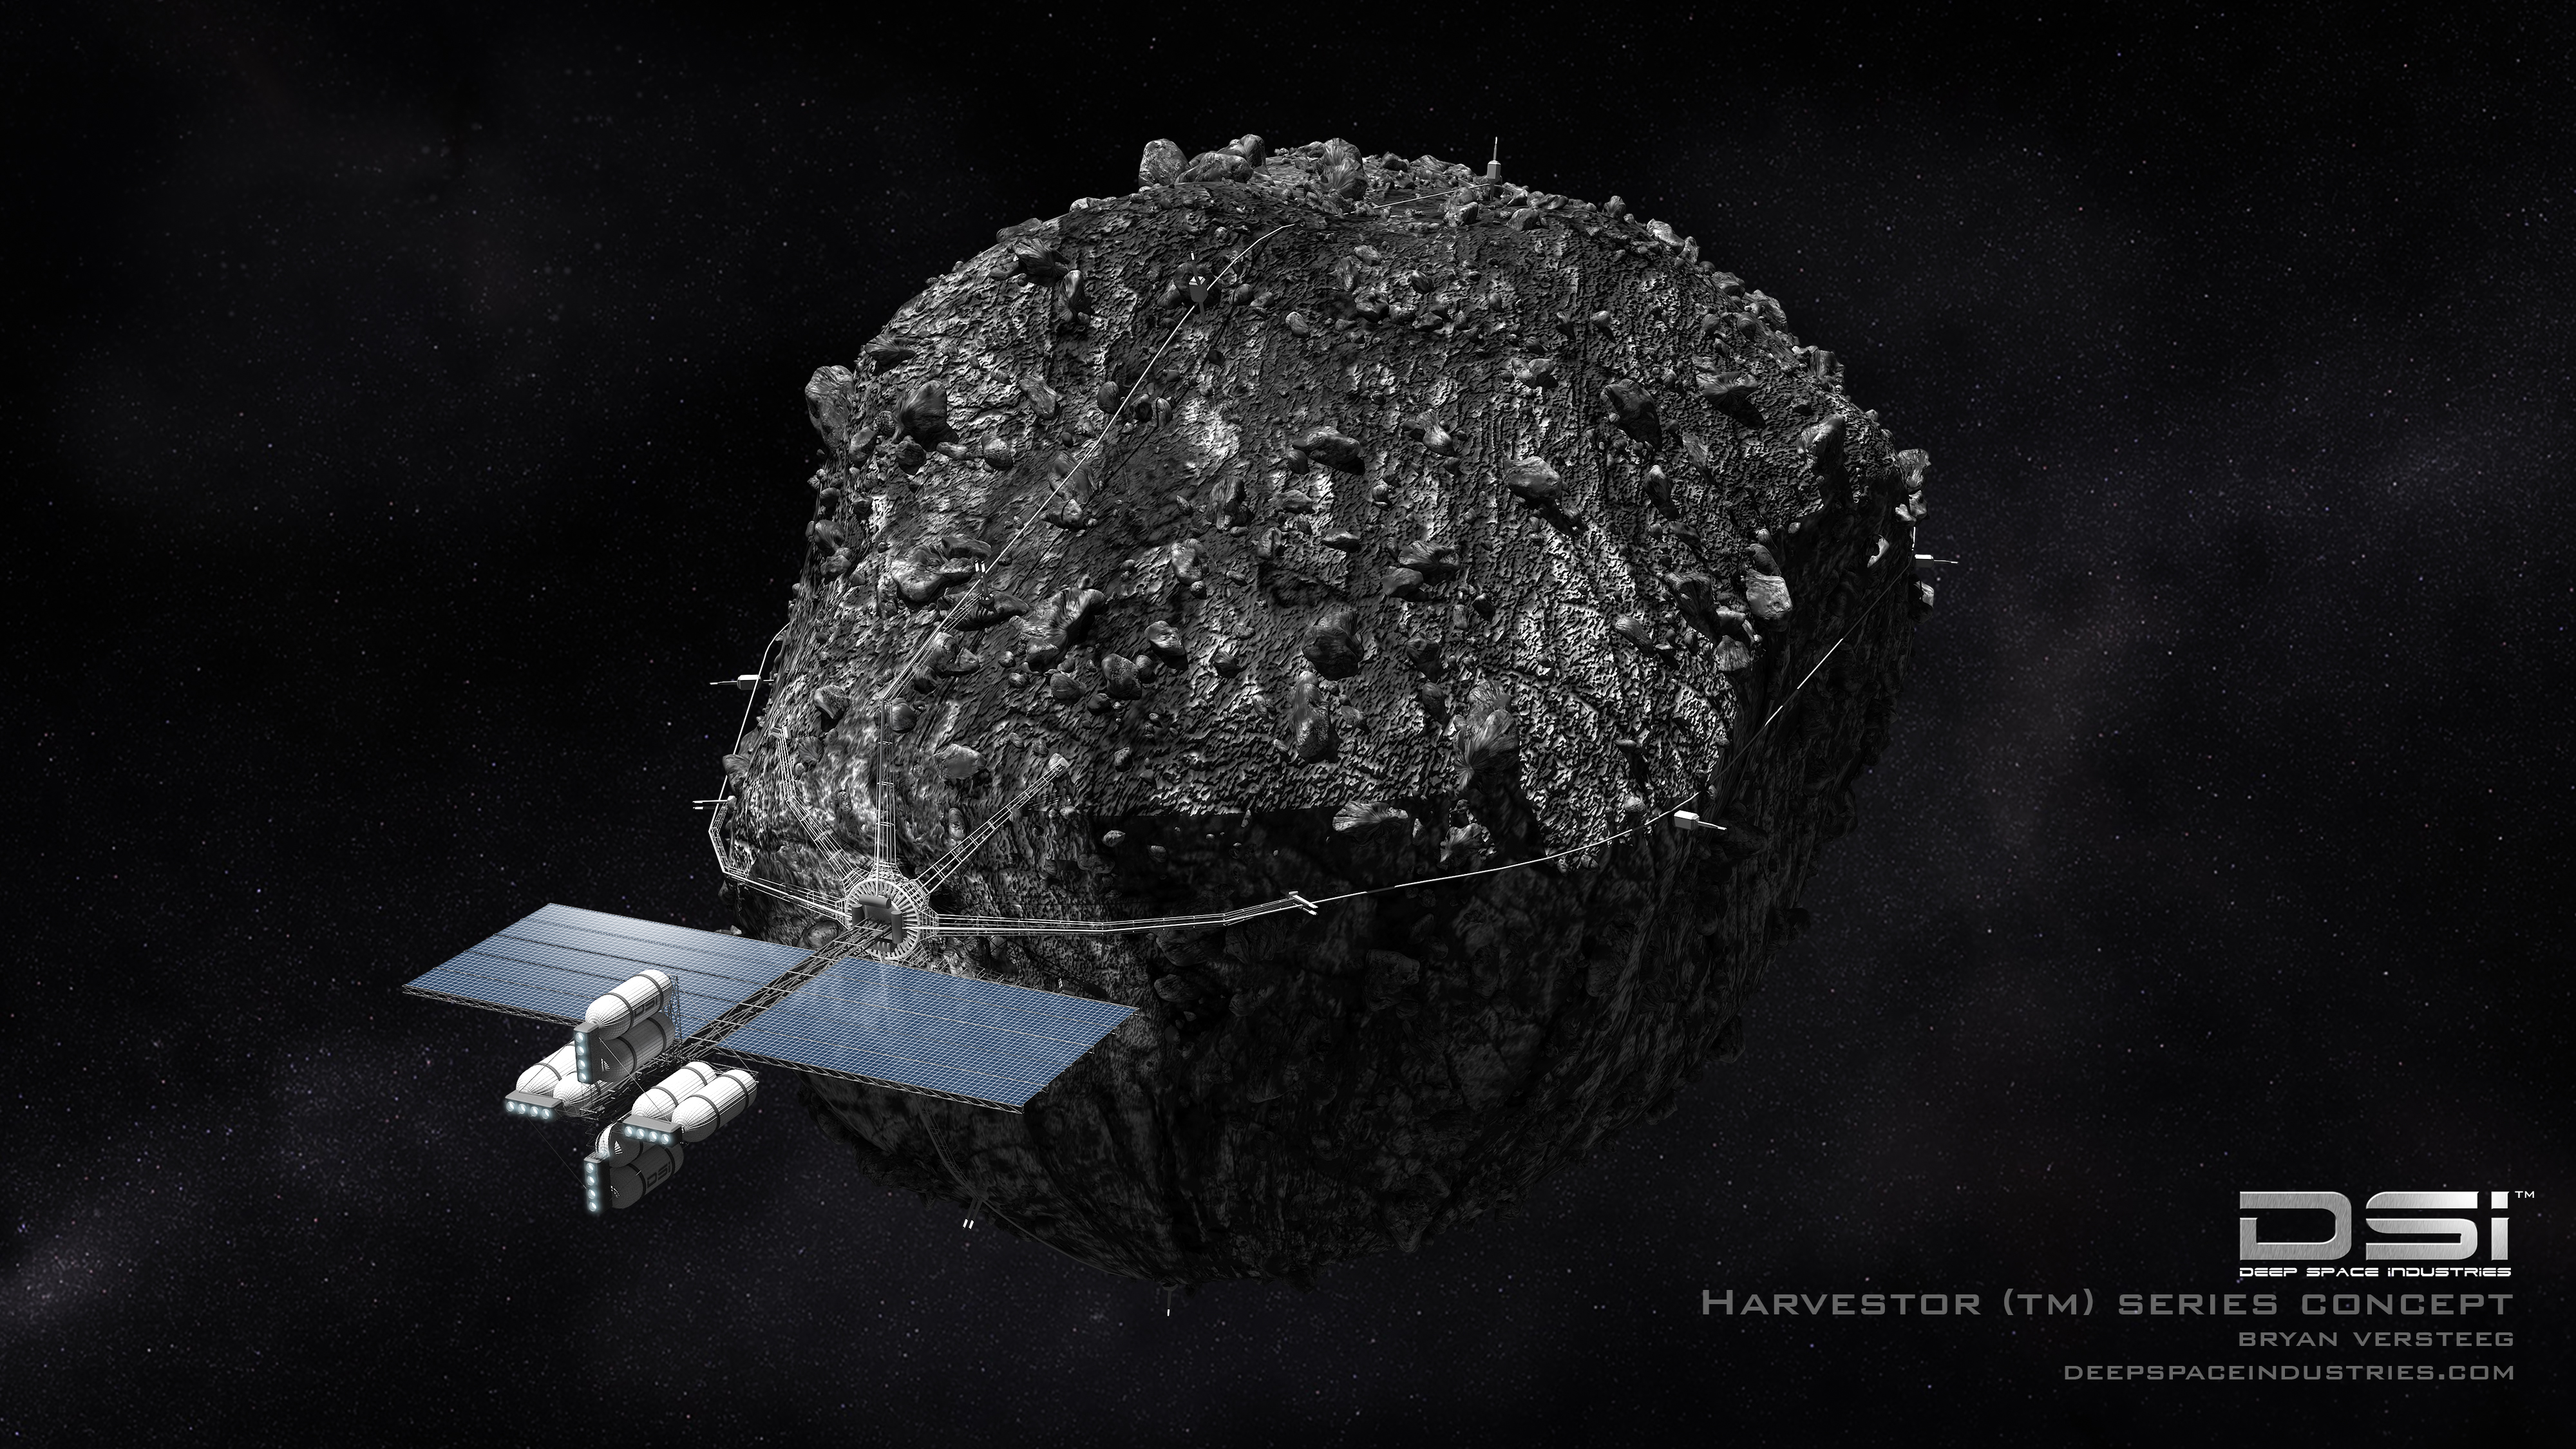 deep space industries asteroid mining harvester economics